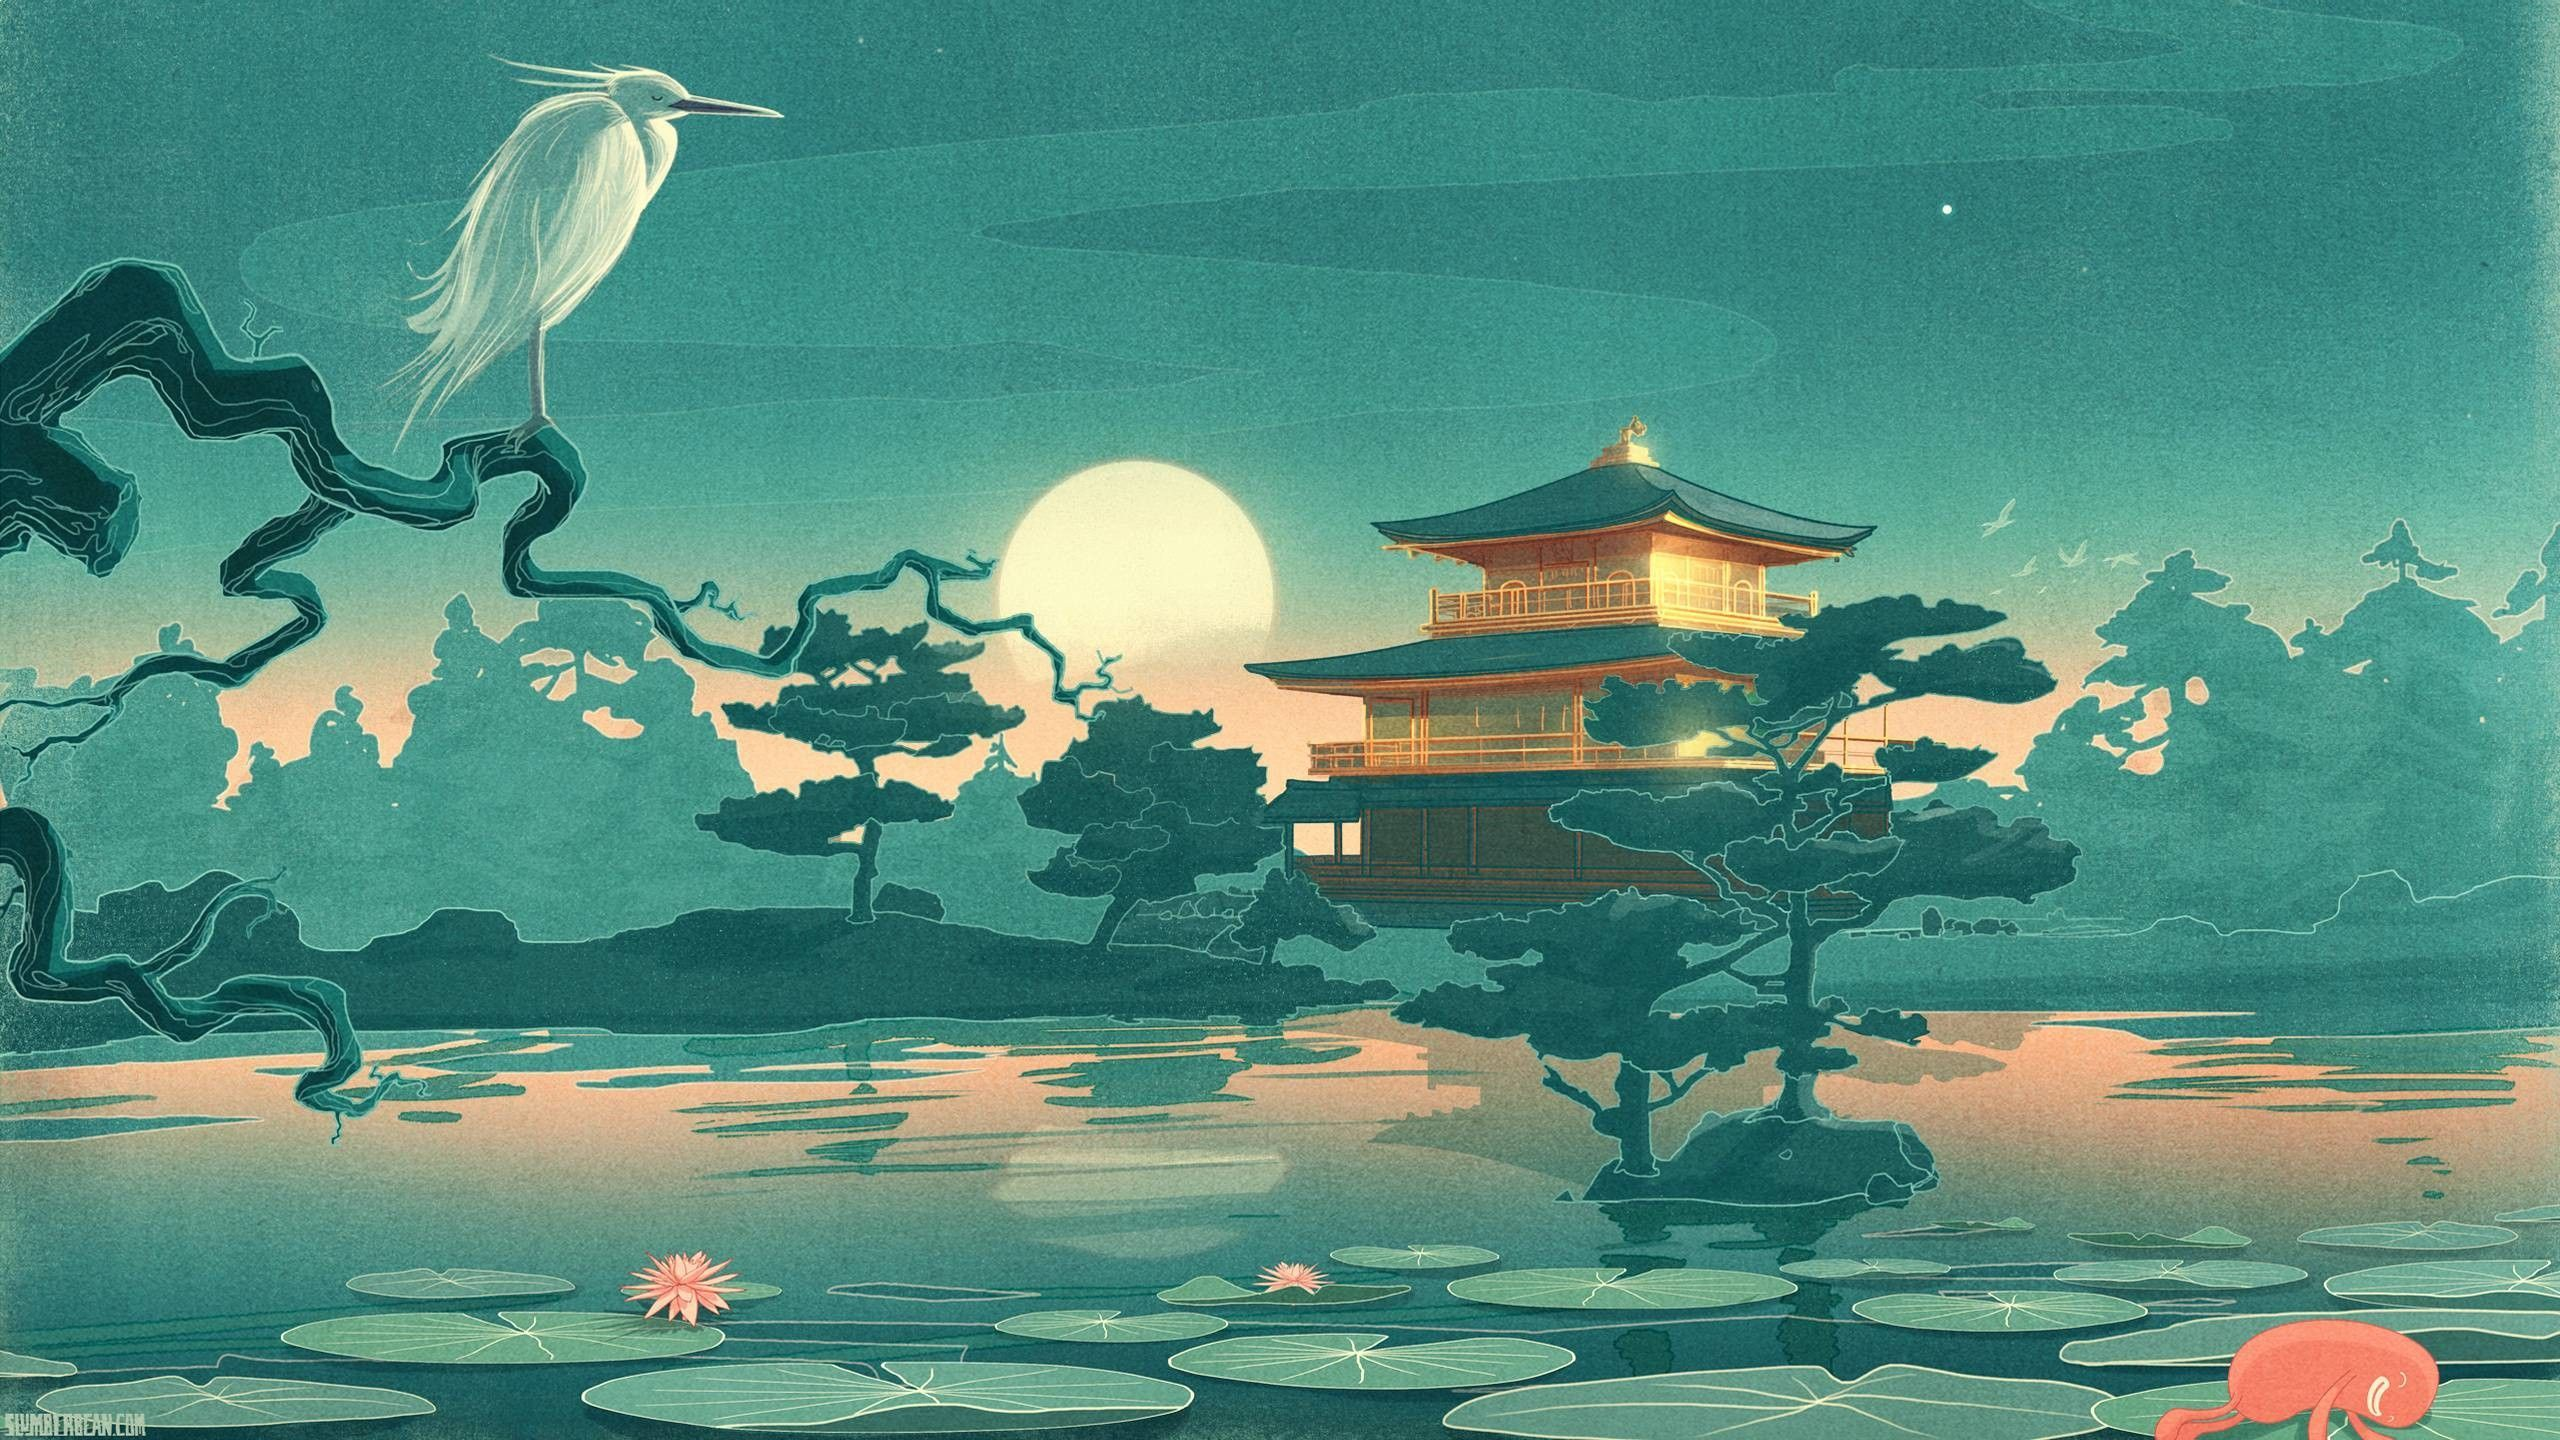 Japanese Aesthetic 1600x900 Wallpapers Top Free Japanese Aesthetic 1600x900 Backgrounds Wallpaperaccess Desktop Wallpaper Art Japanese Art Art Wallpaper